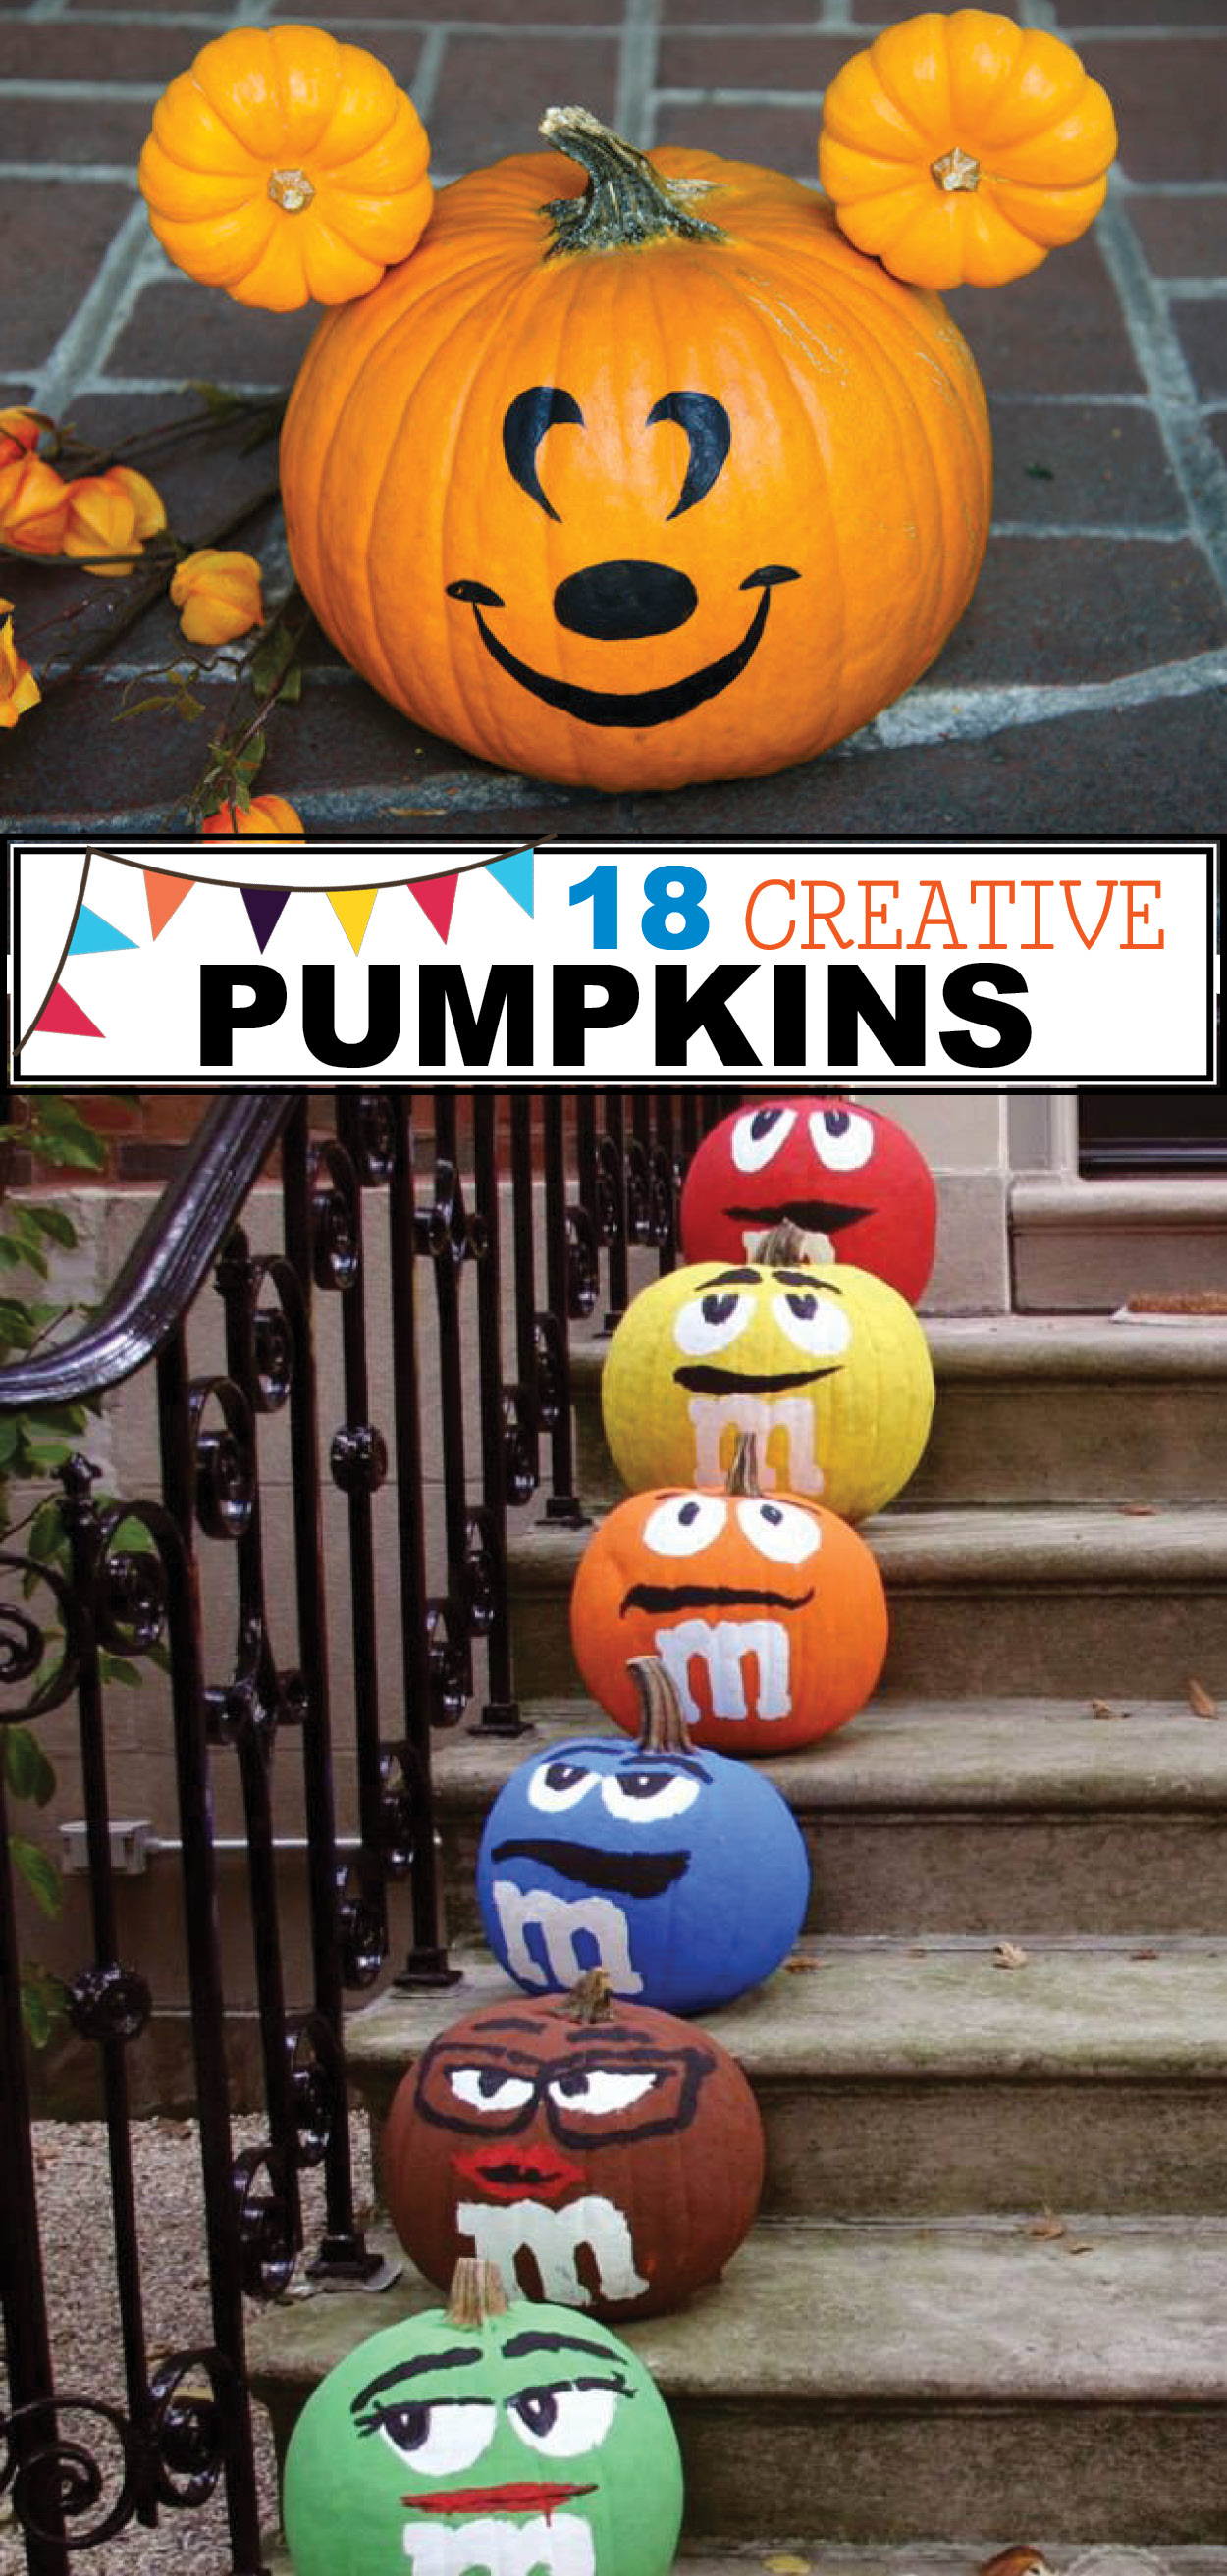 18 Creative Pumpkin Ideas